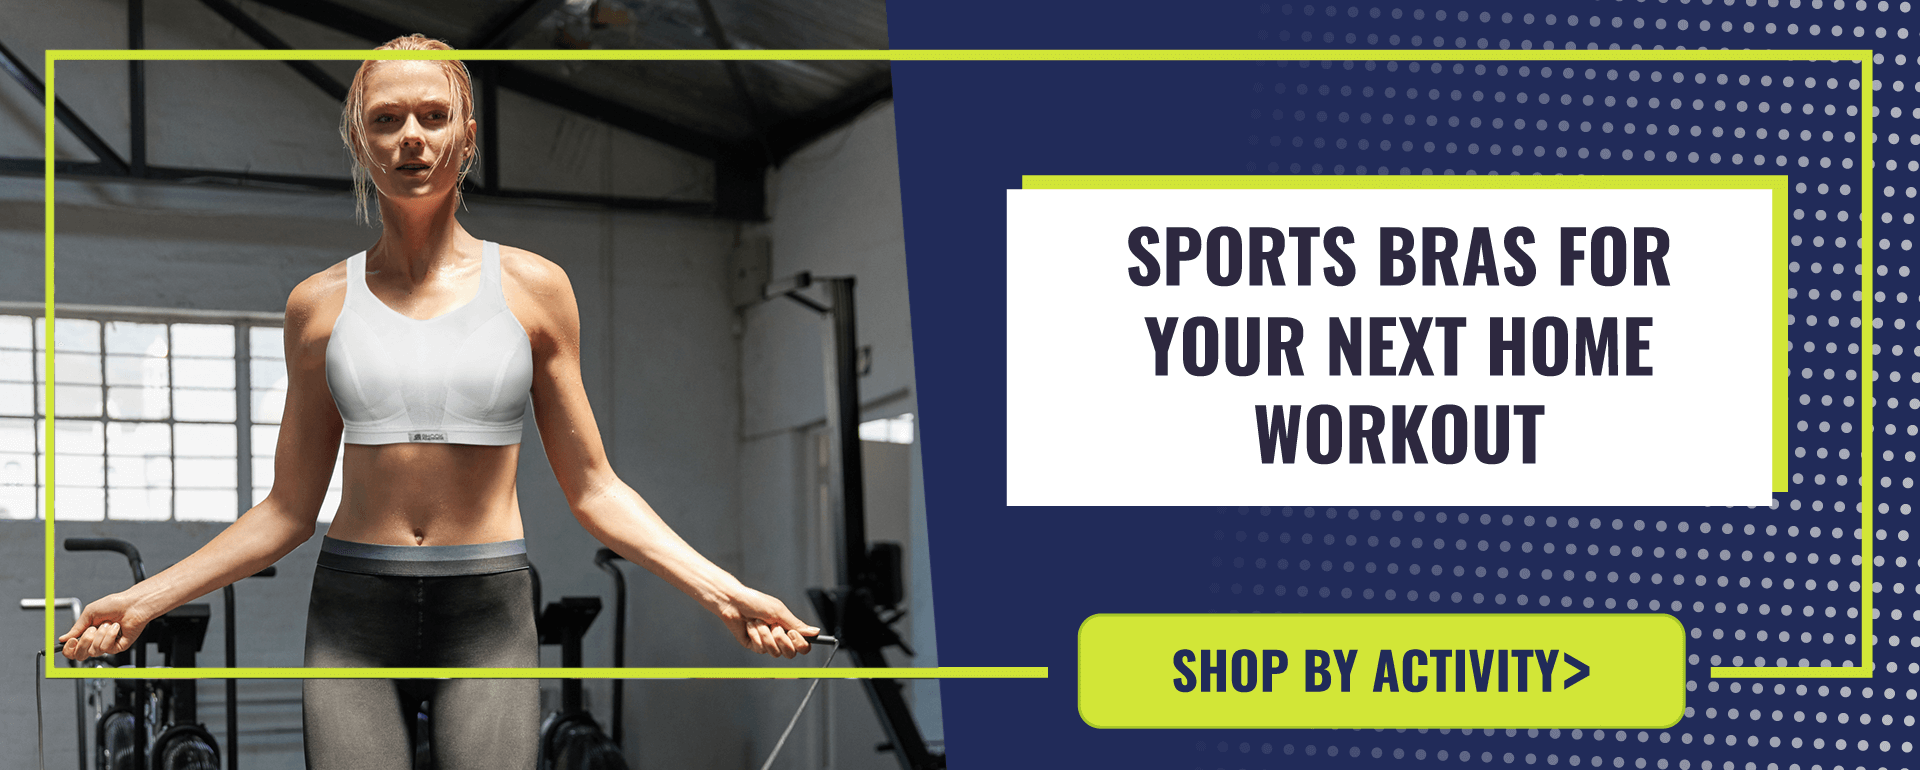 sports-bras-for-your-next-at-home-workout-banner.png